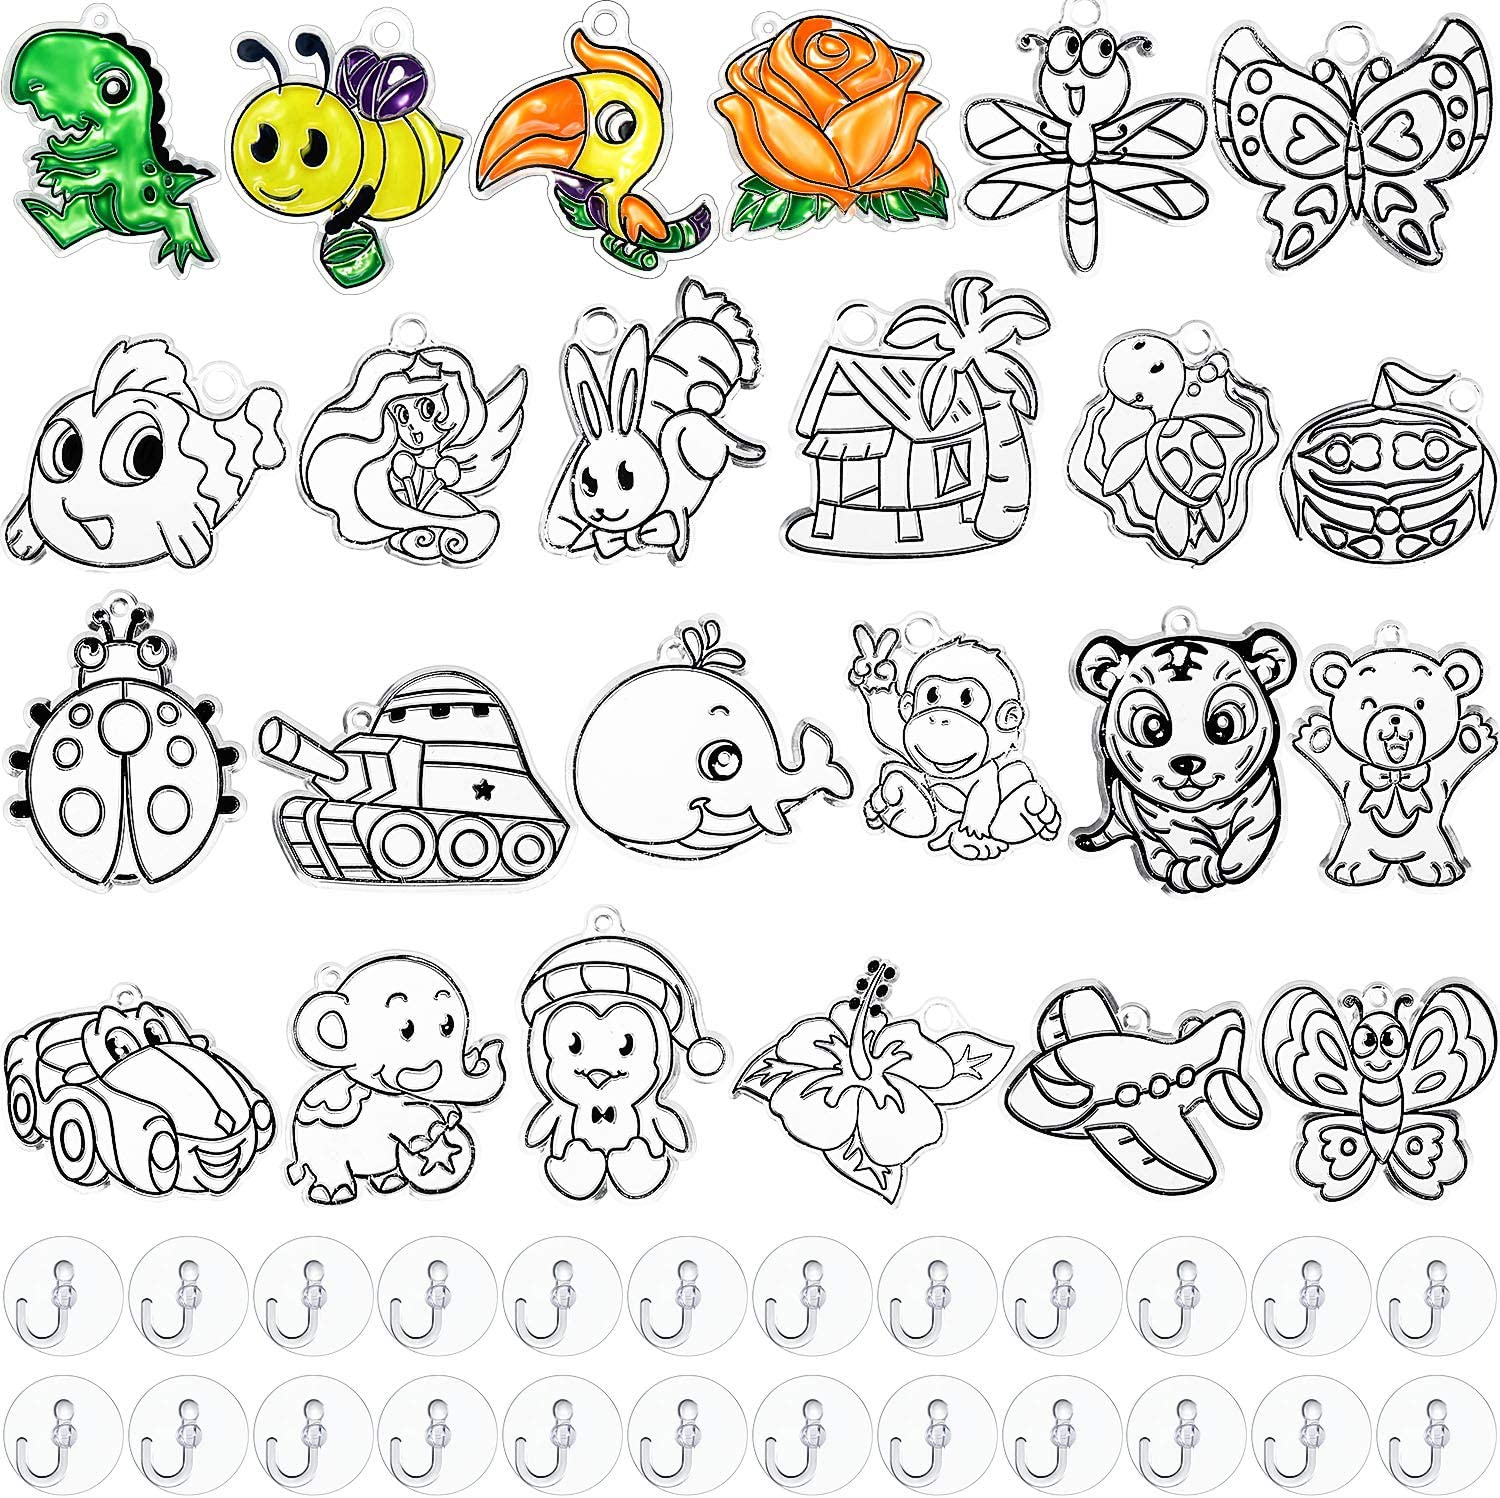 24 Pieces Christmas Suncatchers Craft Kits Assorted Sun Catcher for Kids Art Window Suncatchers Kits with 24 Pieces Suction Cups for Painting Crafts Home Decor Supplies (Animals Theme)